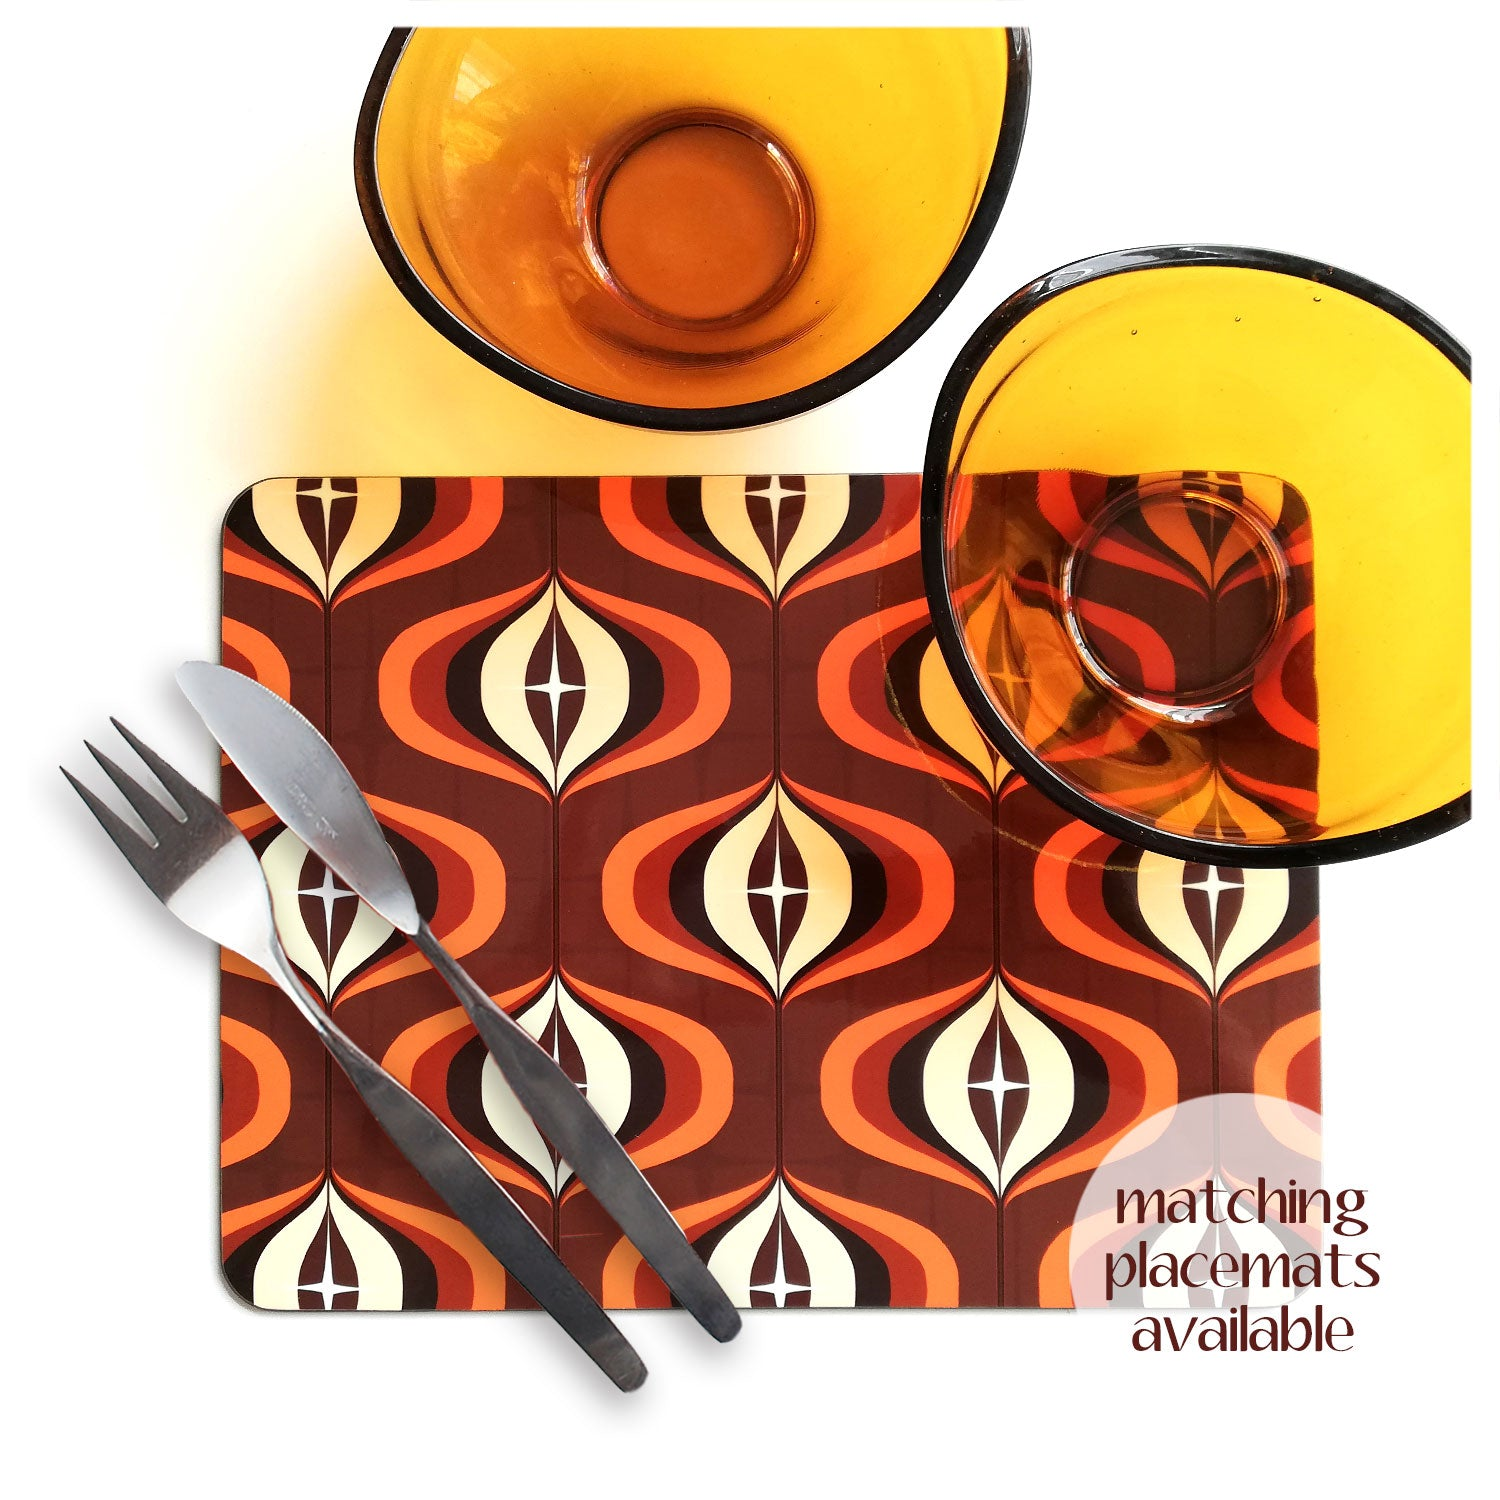 70s Op Art placemat in Brown and Orange with cutlery and vintage 70s bowls | The Inkabilly Emporium